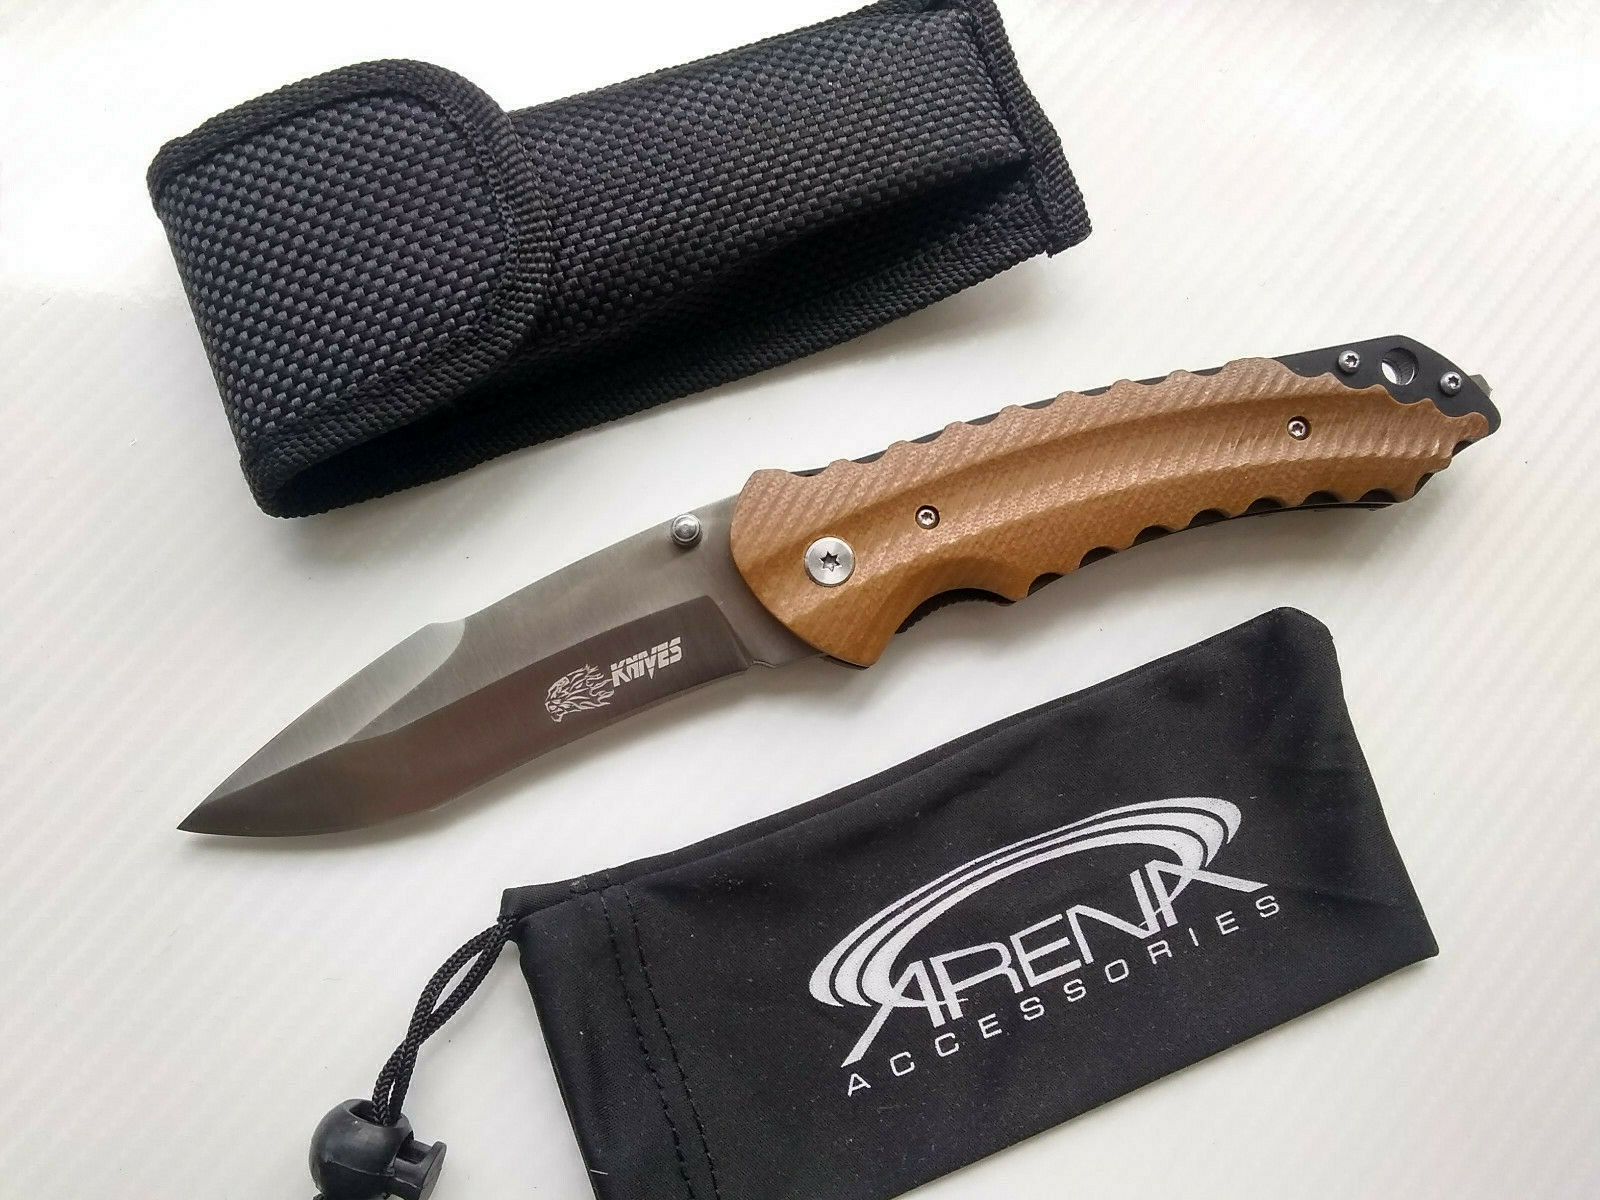 SR Knives 617A Knives Pocket Knife Deep Tip Up Carry Clip G10 Brown Harpoon Blade